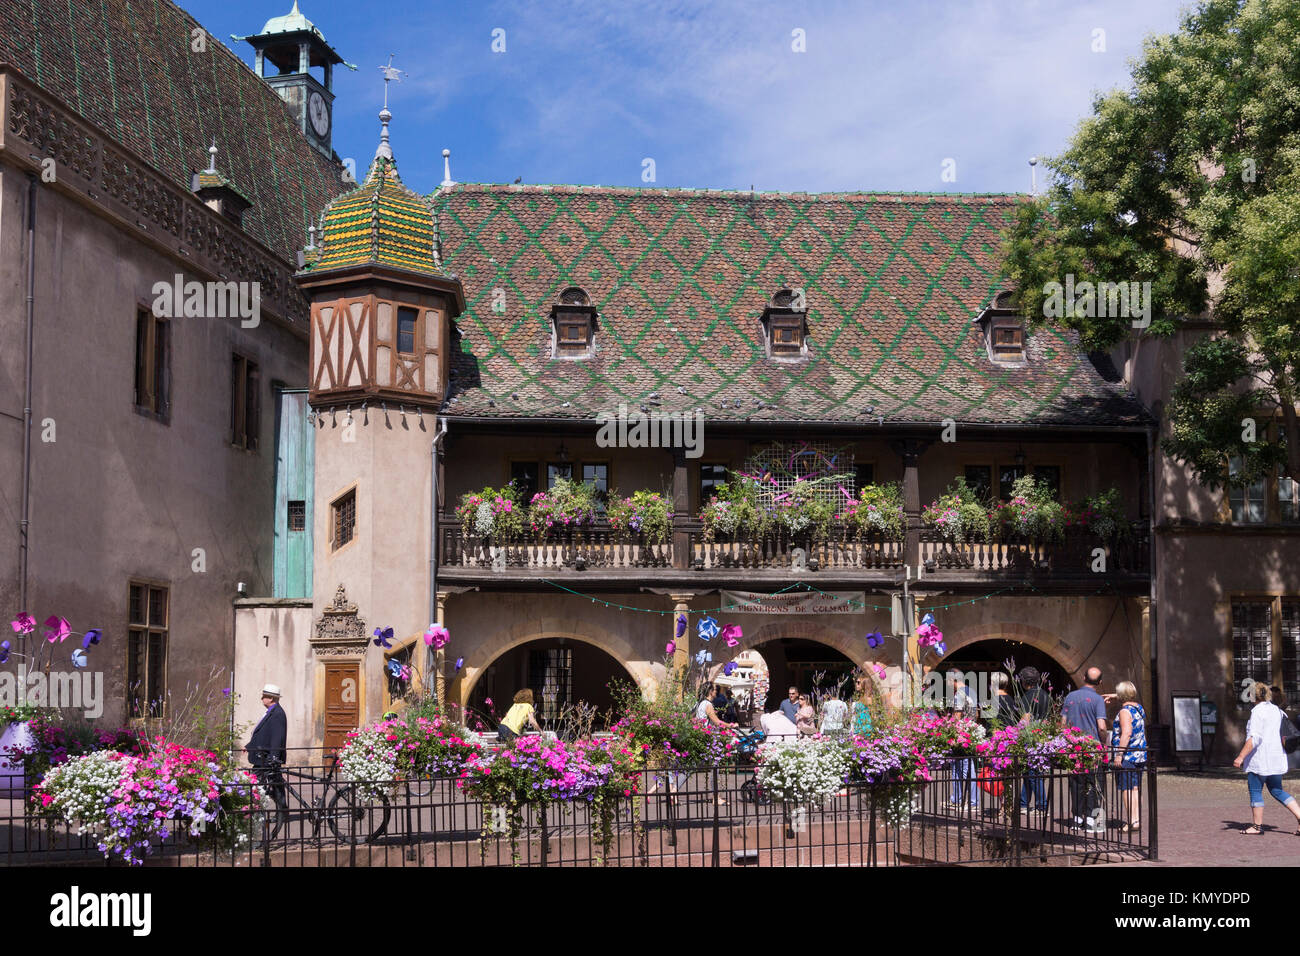 The Renaissance style former customs house (l'Ancienne Douane) in Colmar - Stock Image